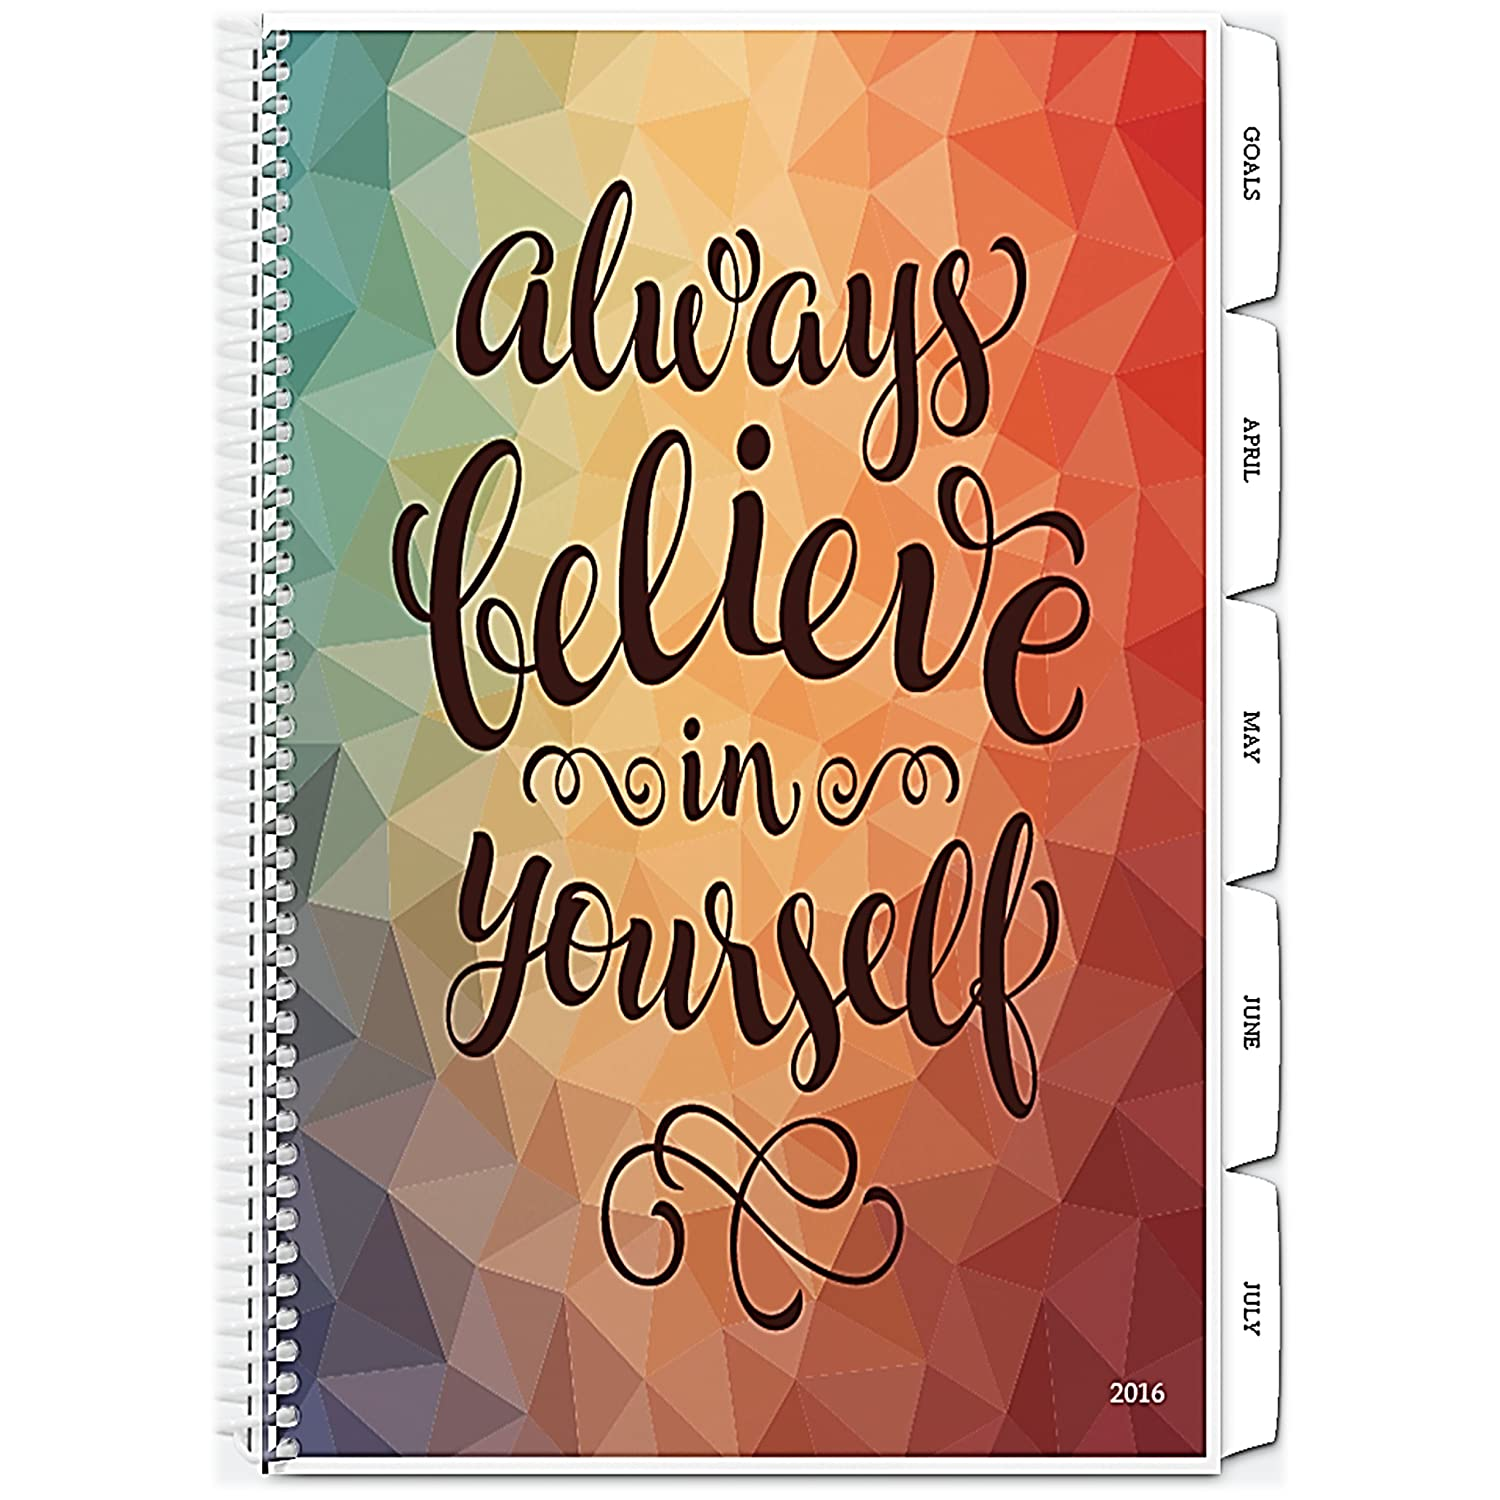 Tools4Wisdom Planner 2016 - 2017 Calendar 4-in-1: Daily Weekly Monthly Yearly Organizer - Purpose Driven Goals Planning Book - Personal Life Progress Journal Notebook (8.5 x 11 / 200 Pages / Spiral)